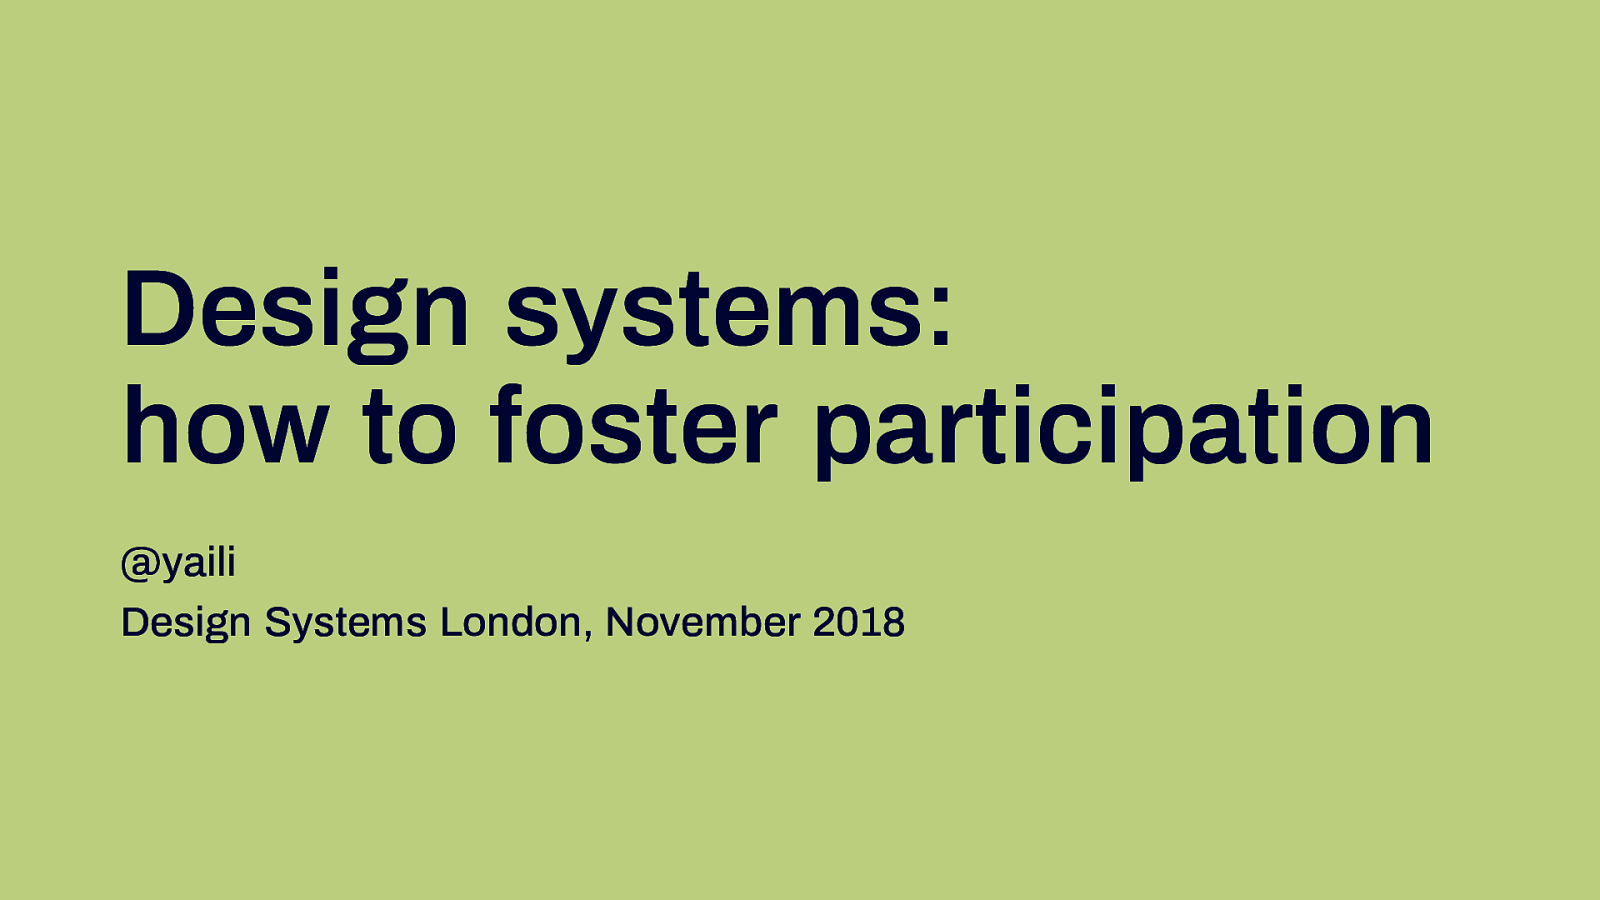 Design systems: how to foster participation